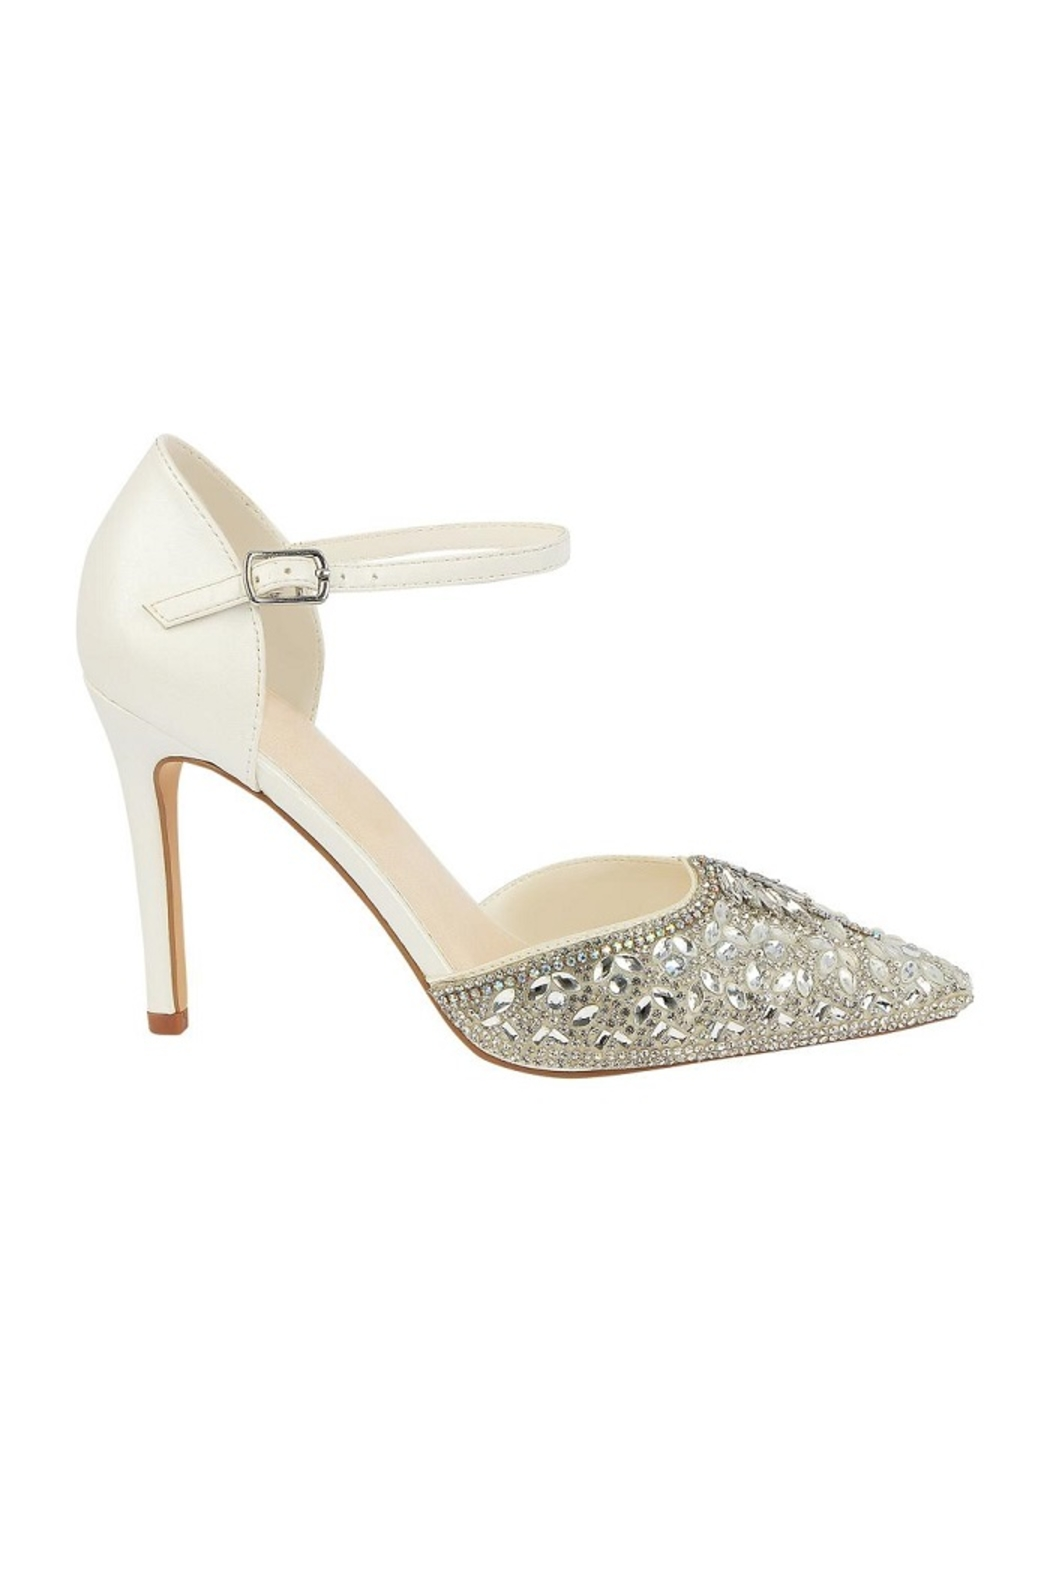 De Blossom Collection Ivory Rhinestone Bridal Heels - Front Full Image